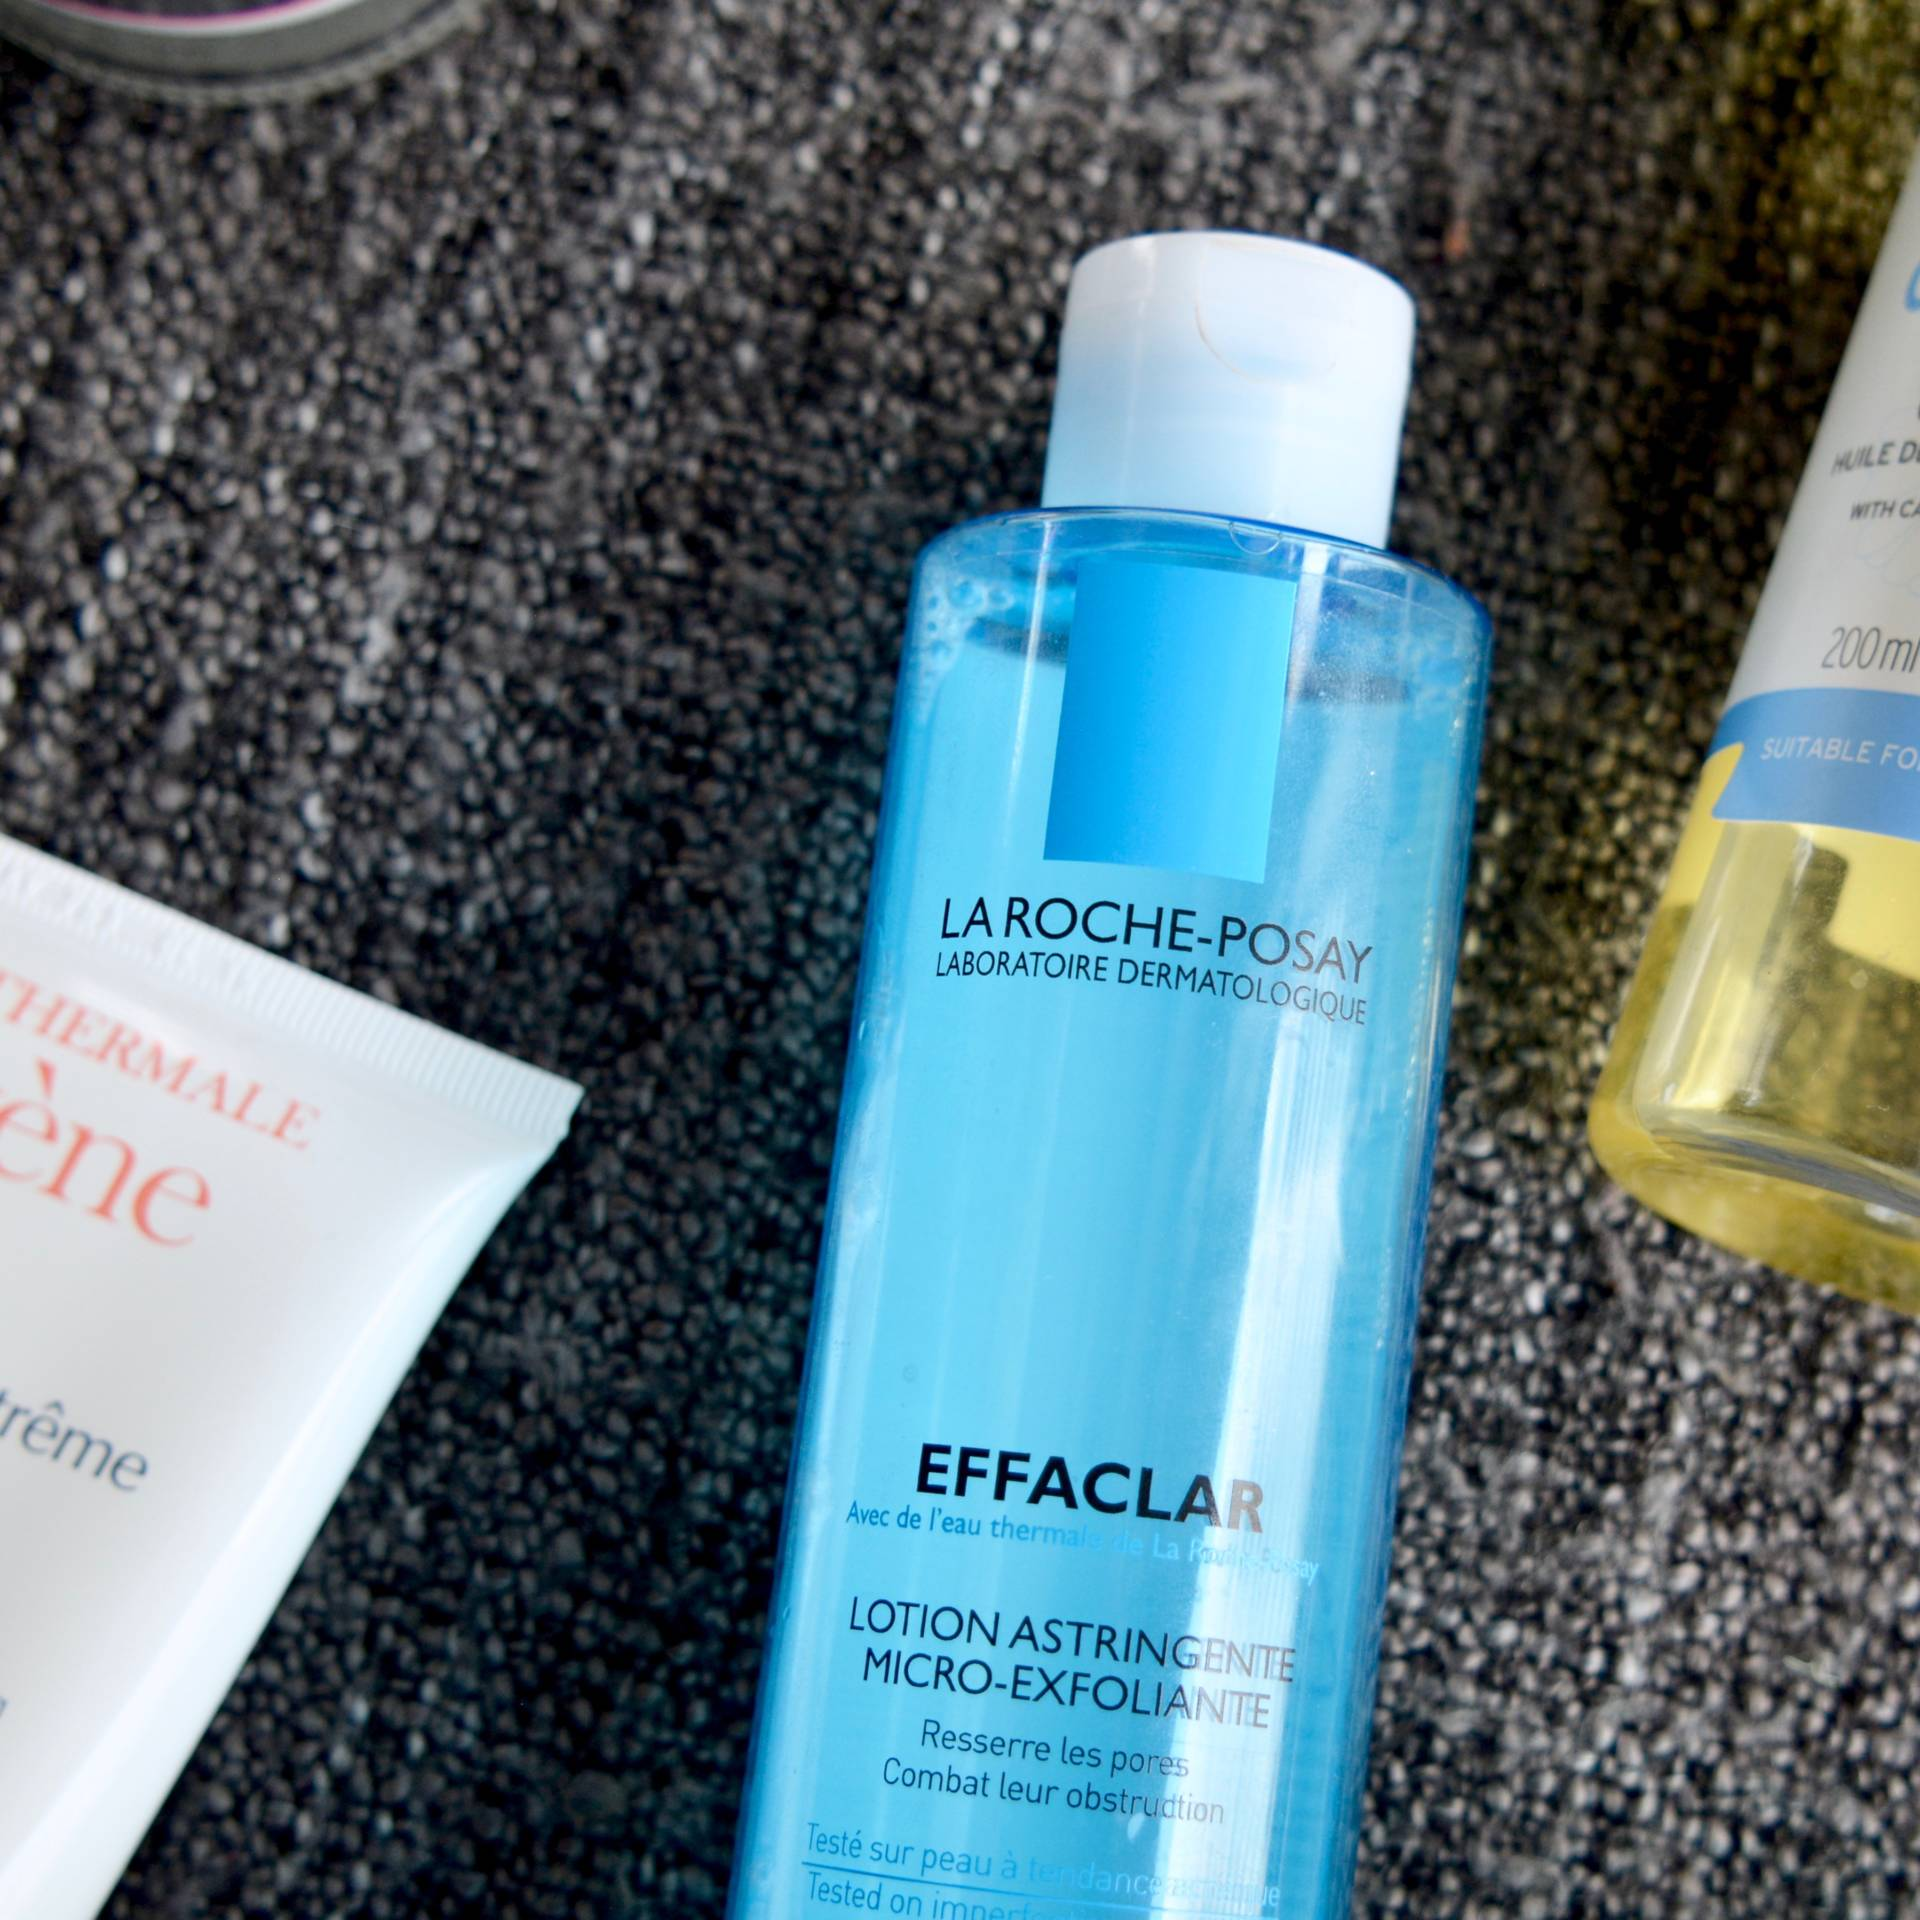 Skincare Shake Up, October 2016: All of the skincare I've been using recently that helps my sensitive skin and rosacea. La Roche-Posay Effaclar Micro-Exfoliant Lotion